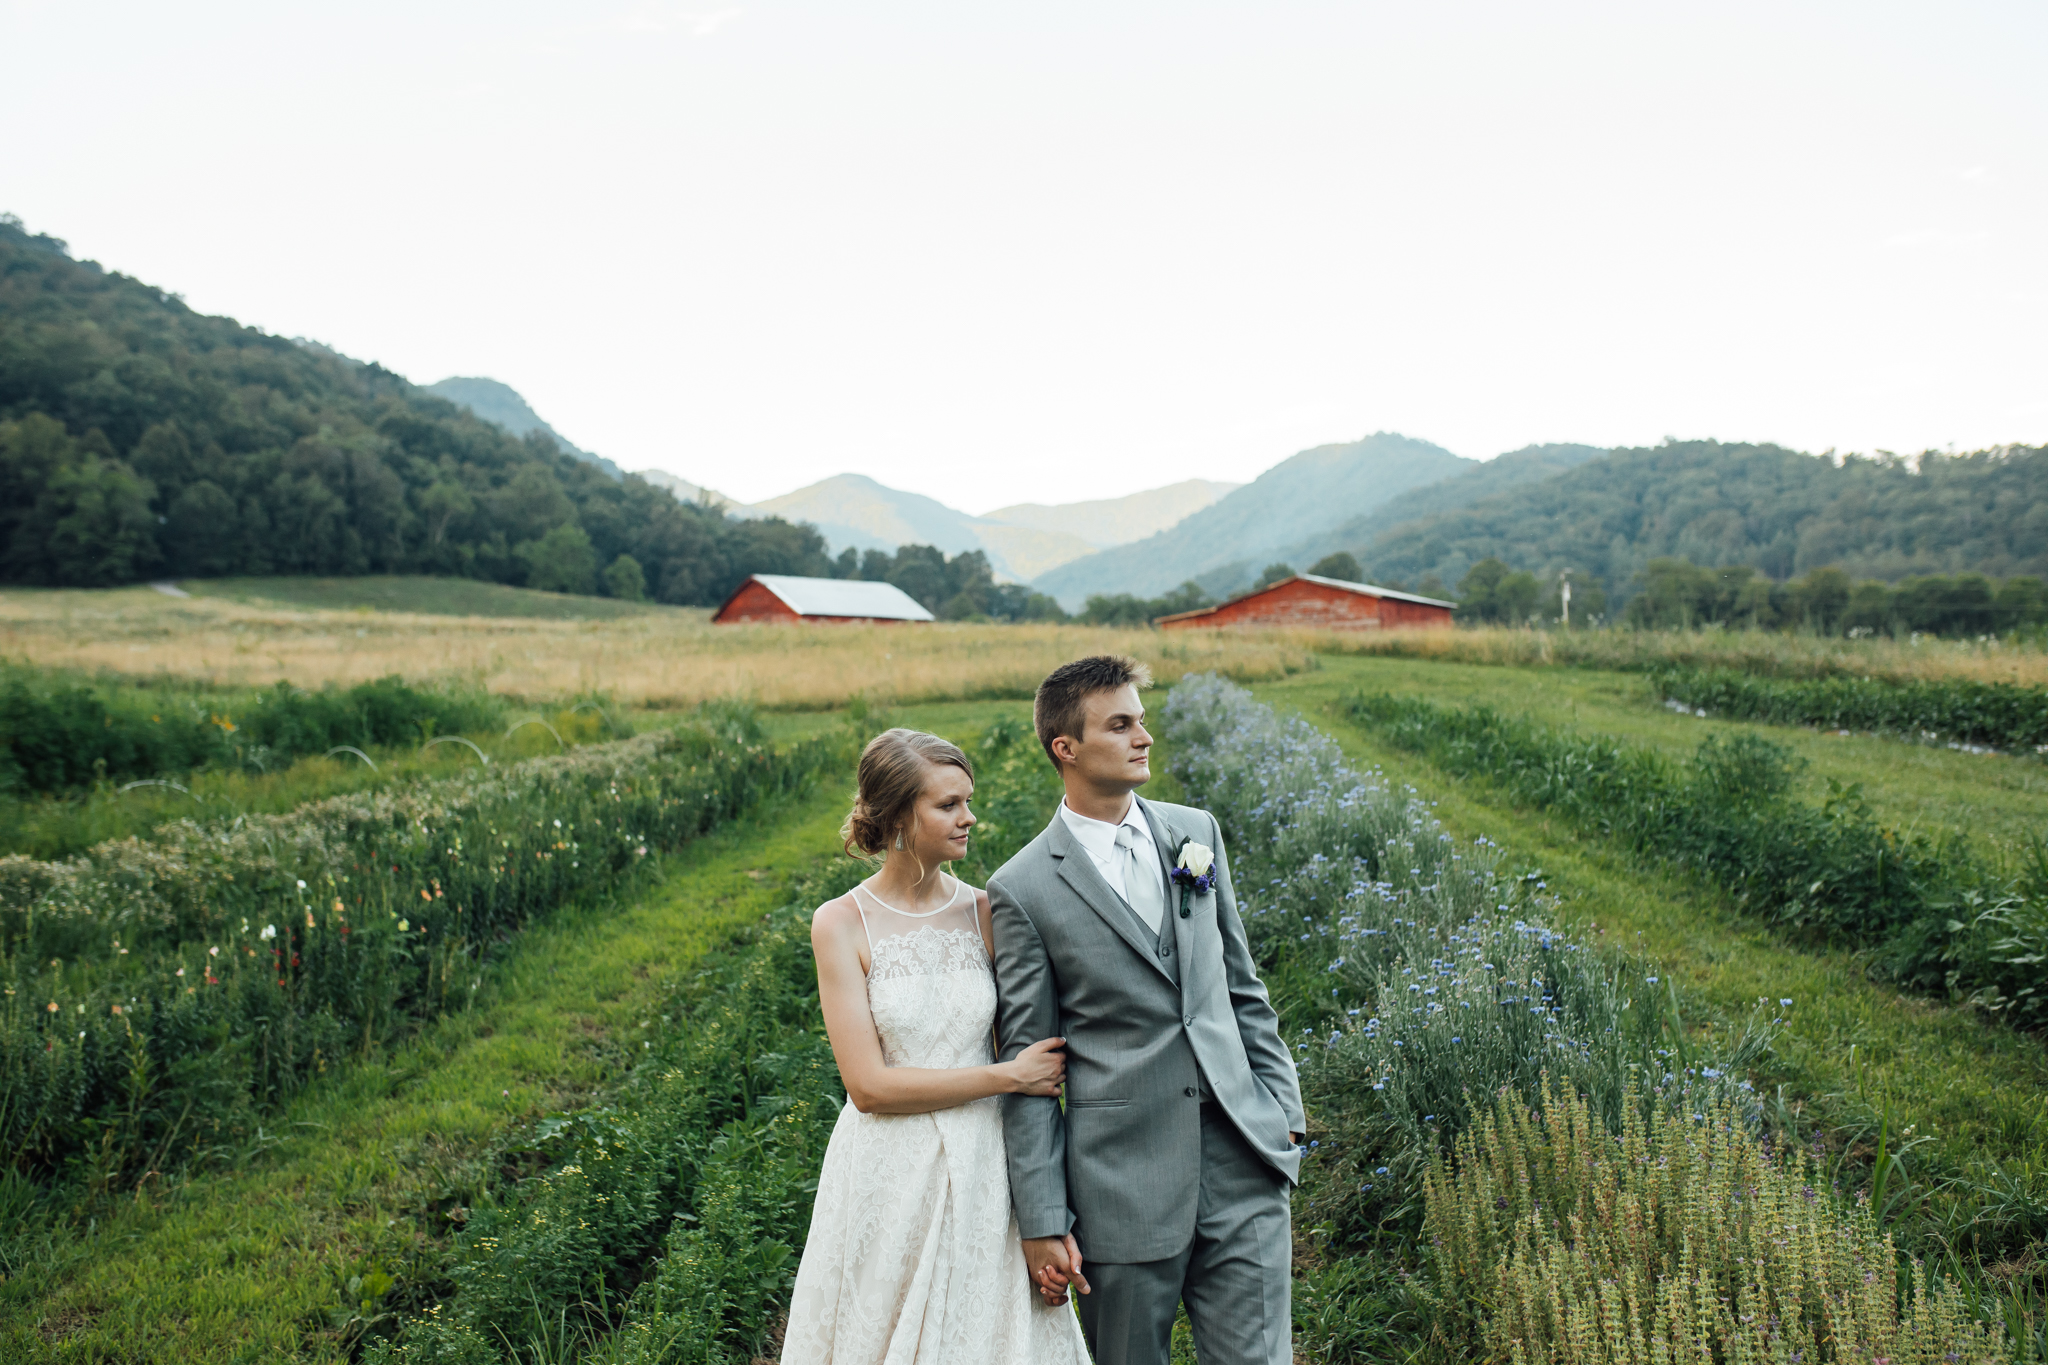 ashville-wedding-photographers-thewarmtharoundyou--backyard-asheville-wedding-mountain-wedding (189 of 244).jpg